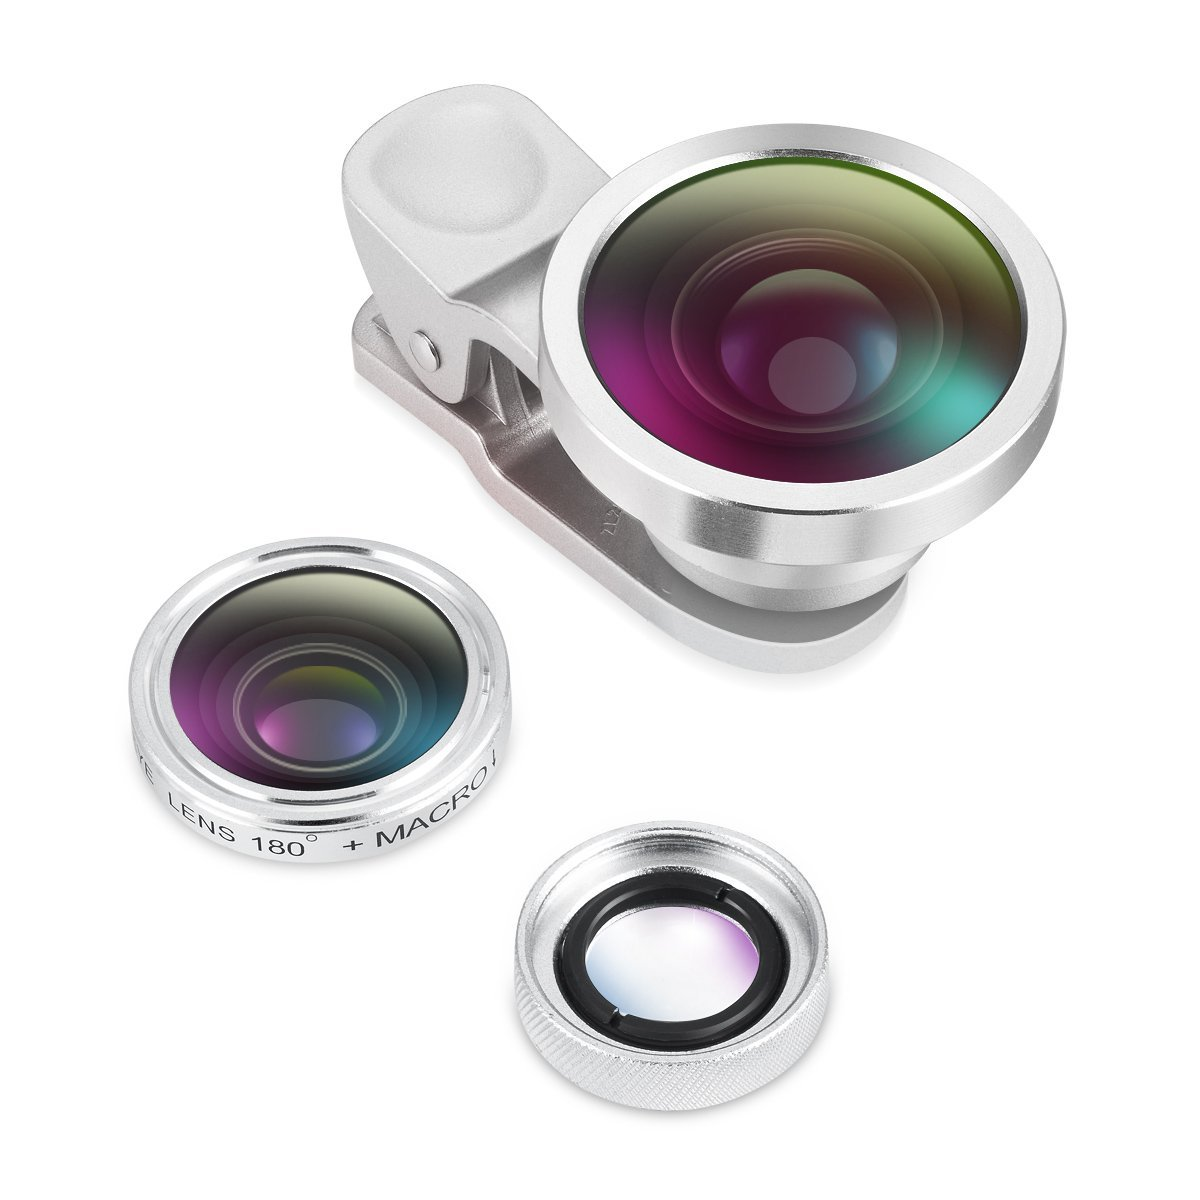 Amir Camera Lens Kit for Smartphones